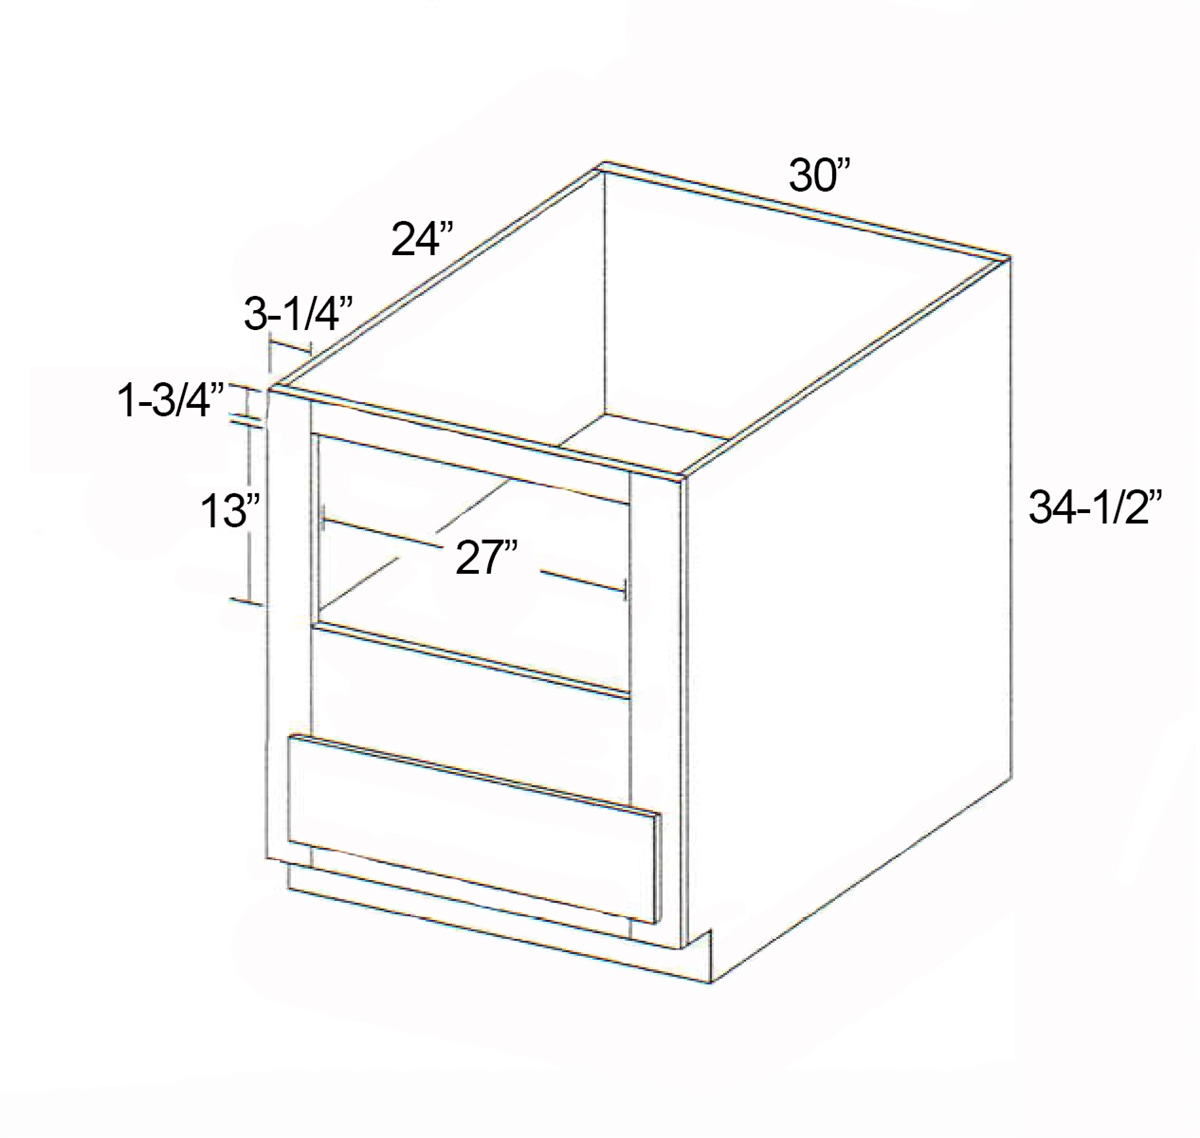 parkview cabinets 30 w x 34 1 2 h x 24 d rta base microwave cabinet